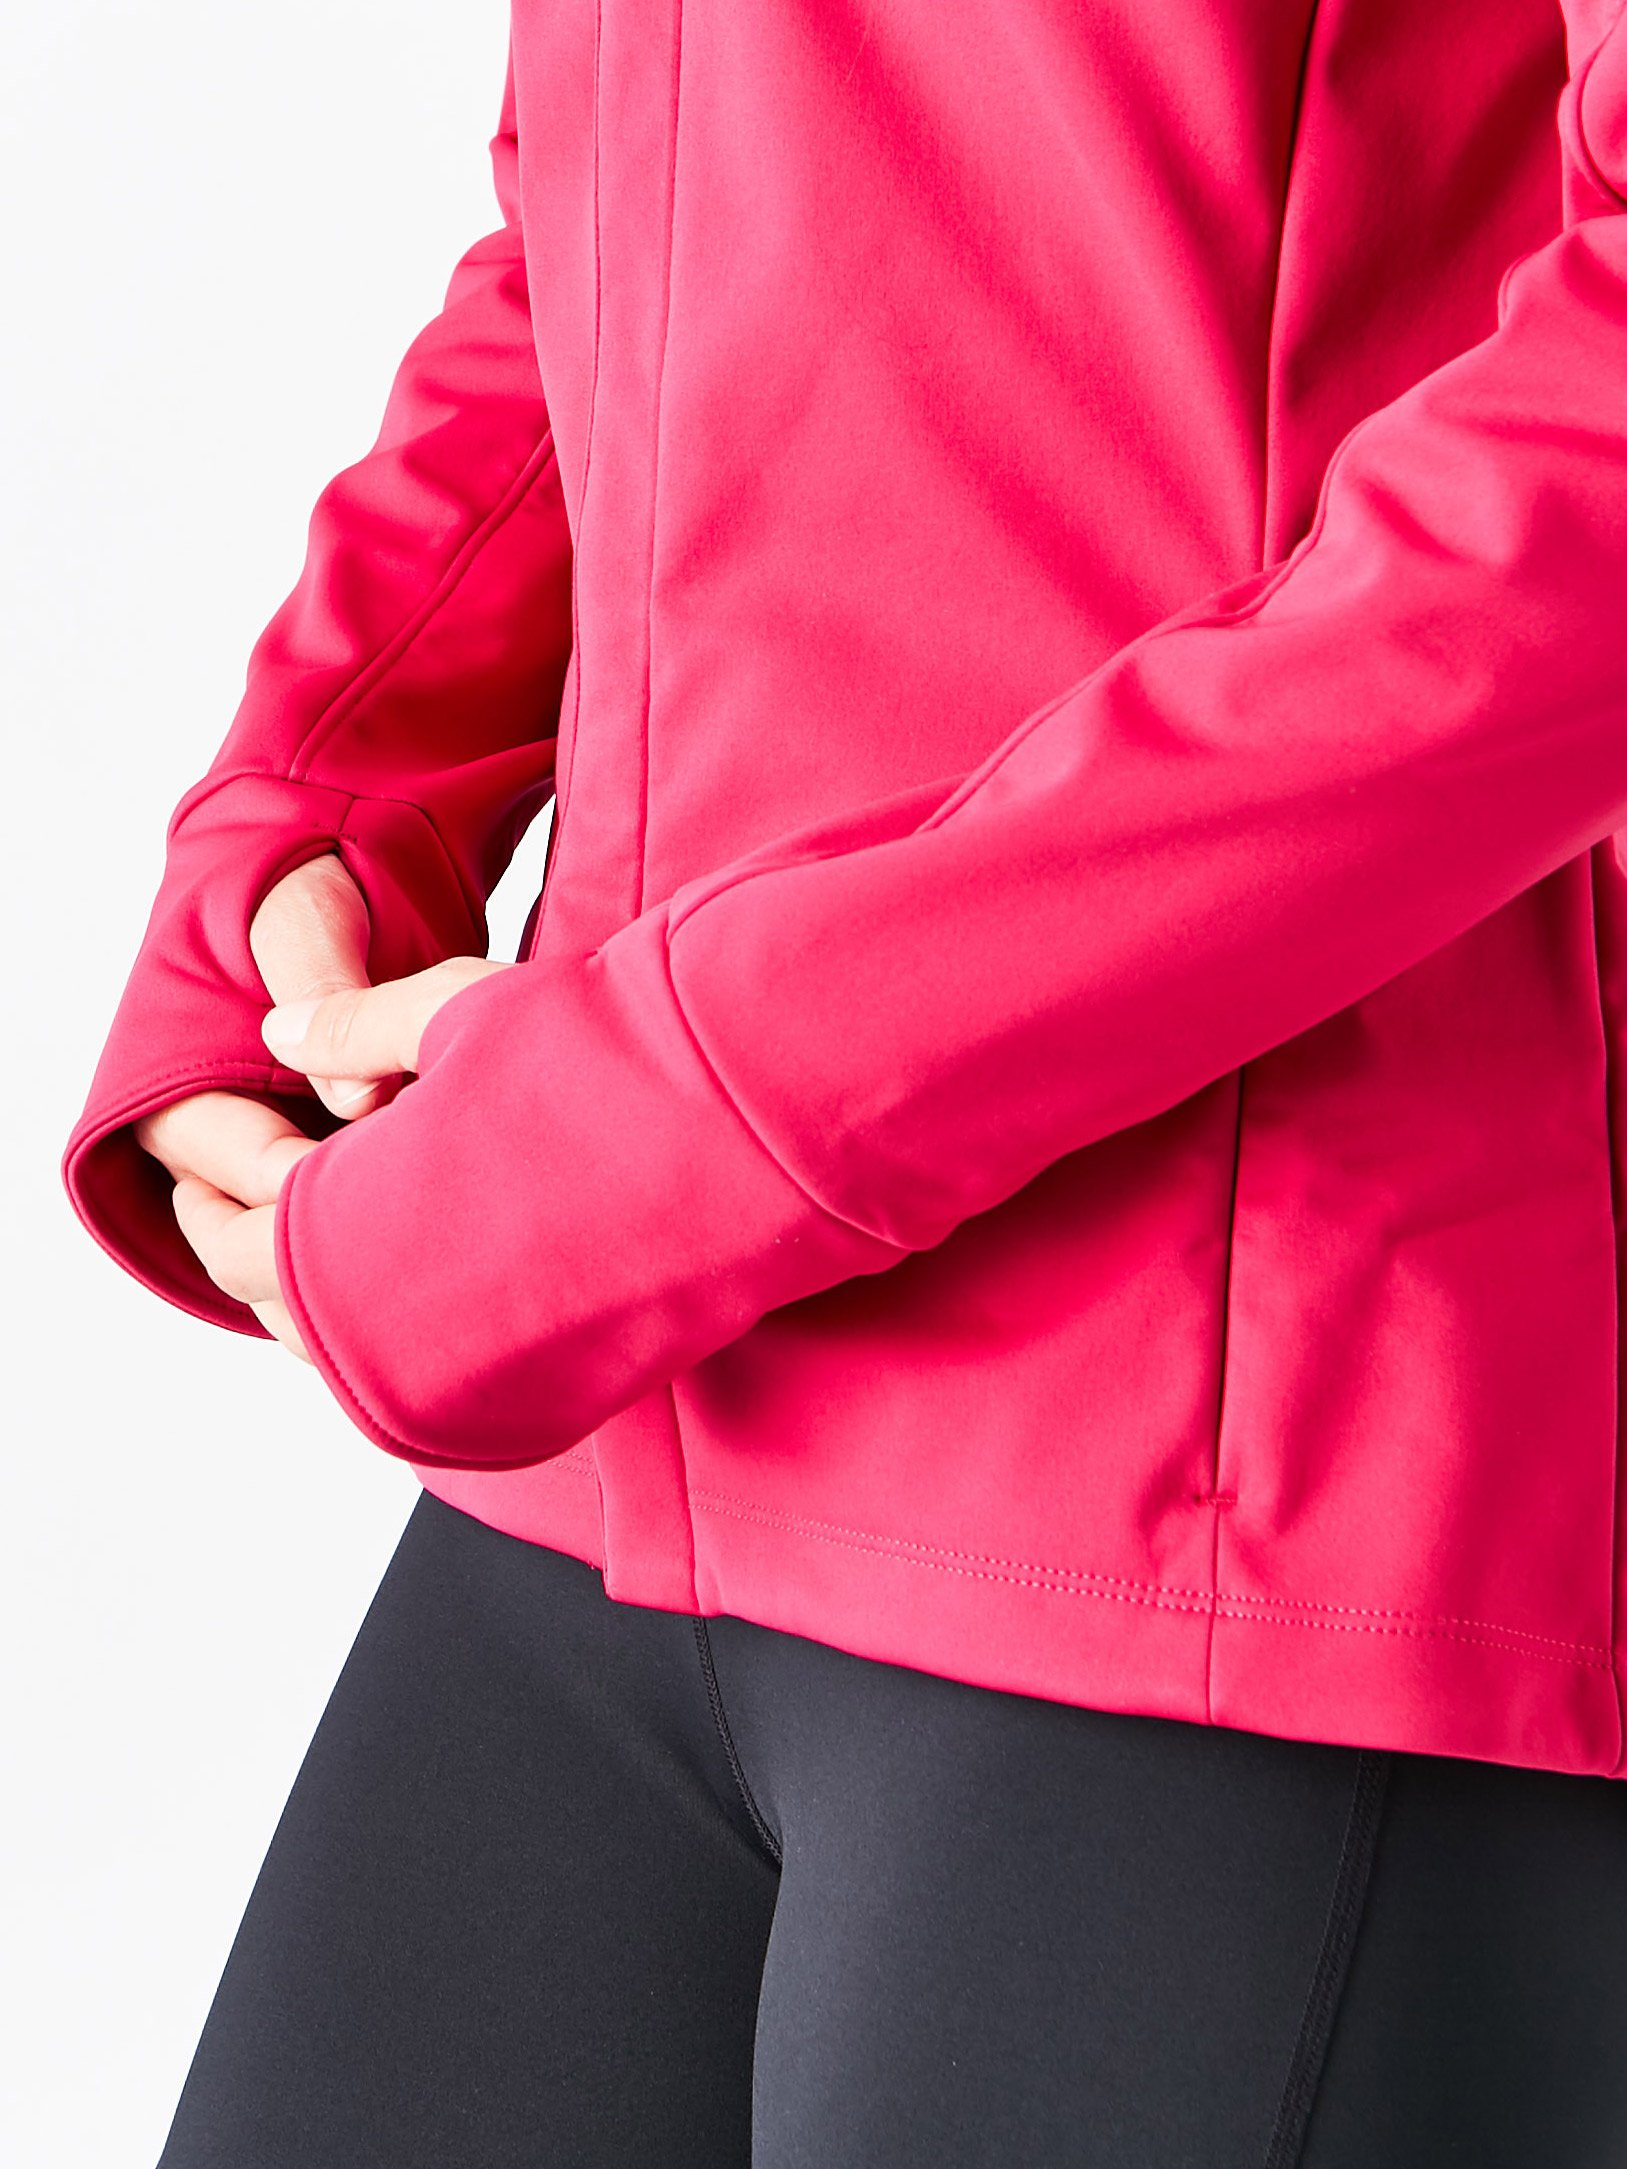 ASICS Womens Softshell Jacket, Performance Black, Small by ASICS (Image #7)